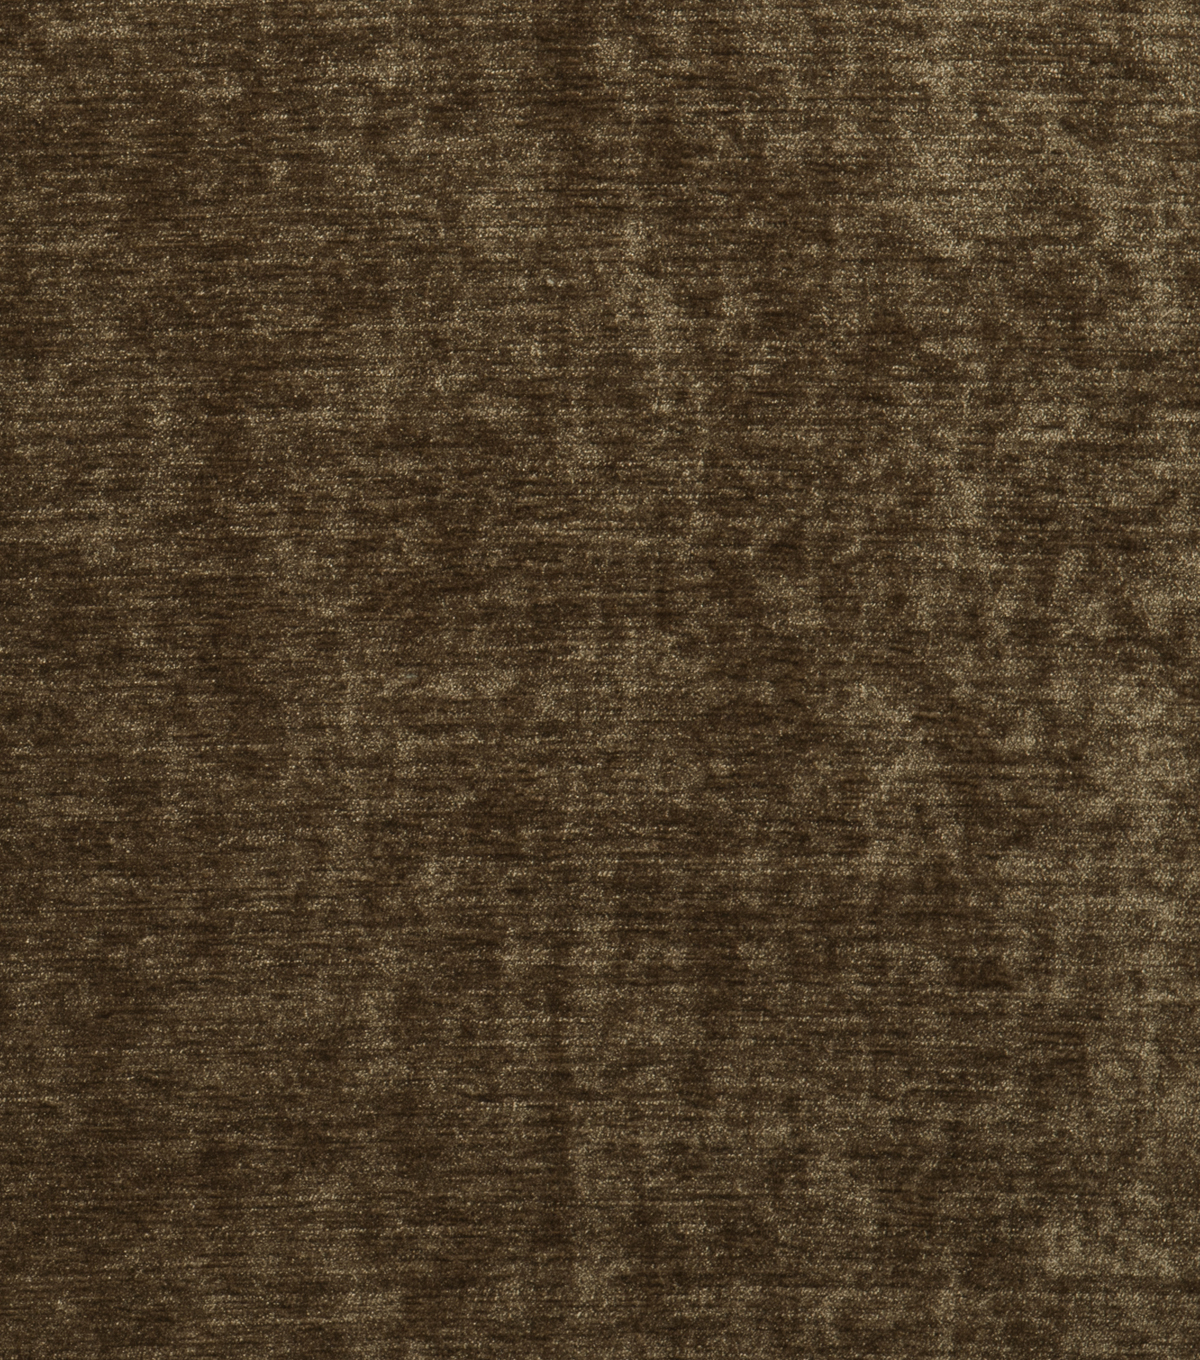 Home Decor 8x8 Fabric Swatch-Eaton Square Lamode Cinder